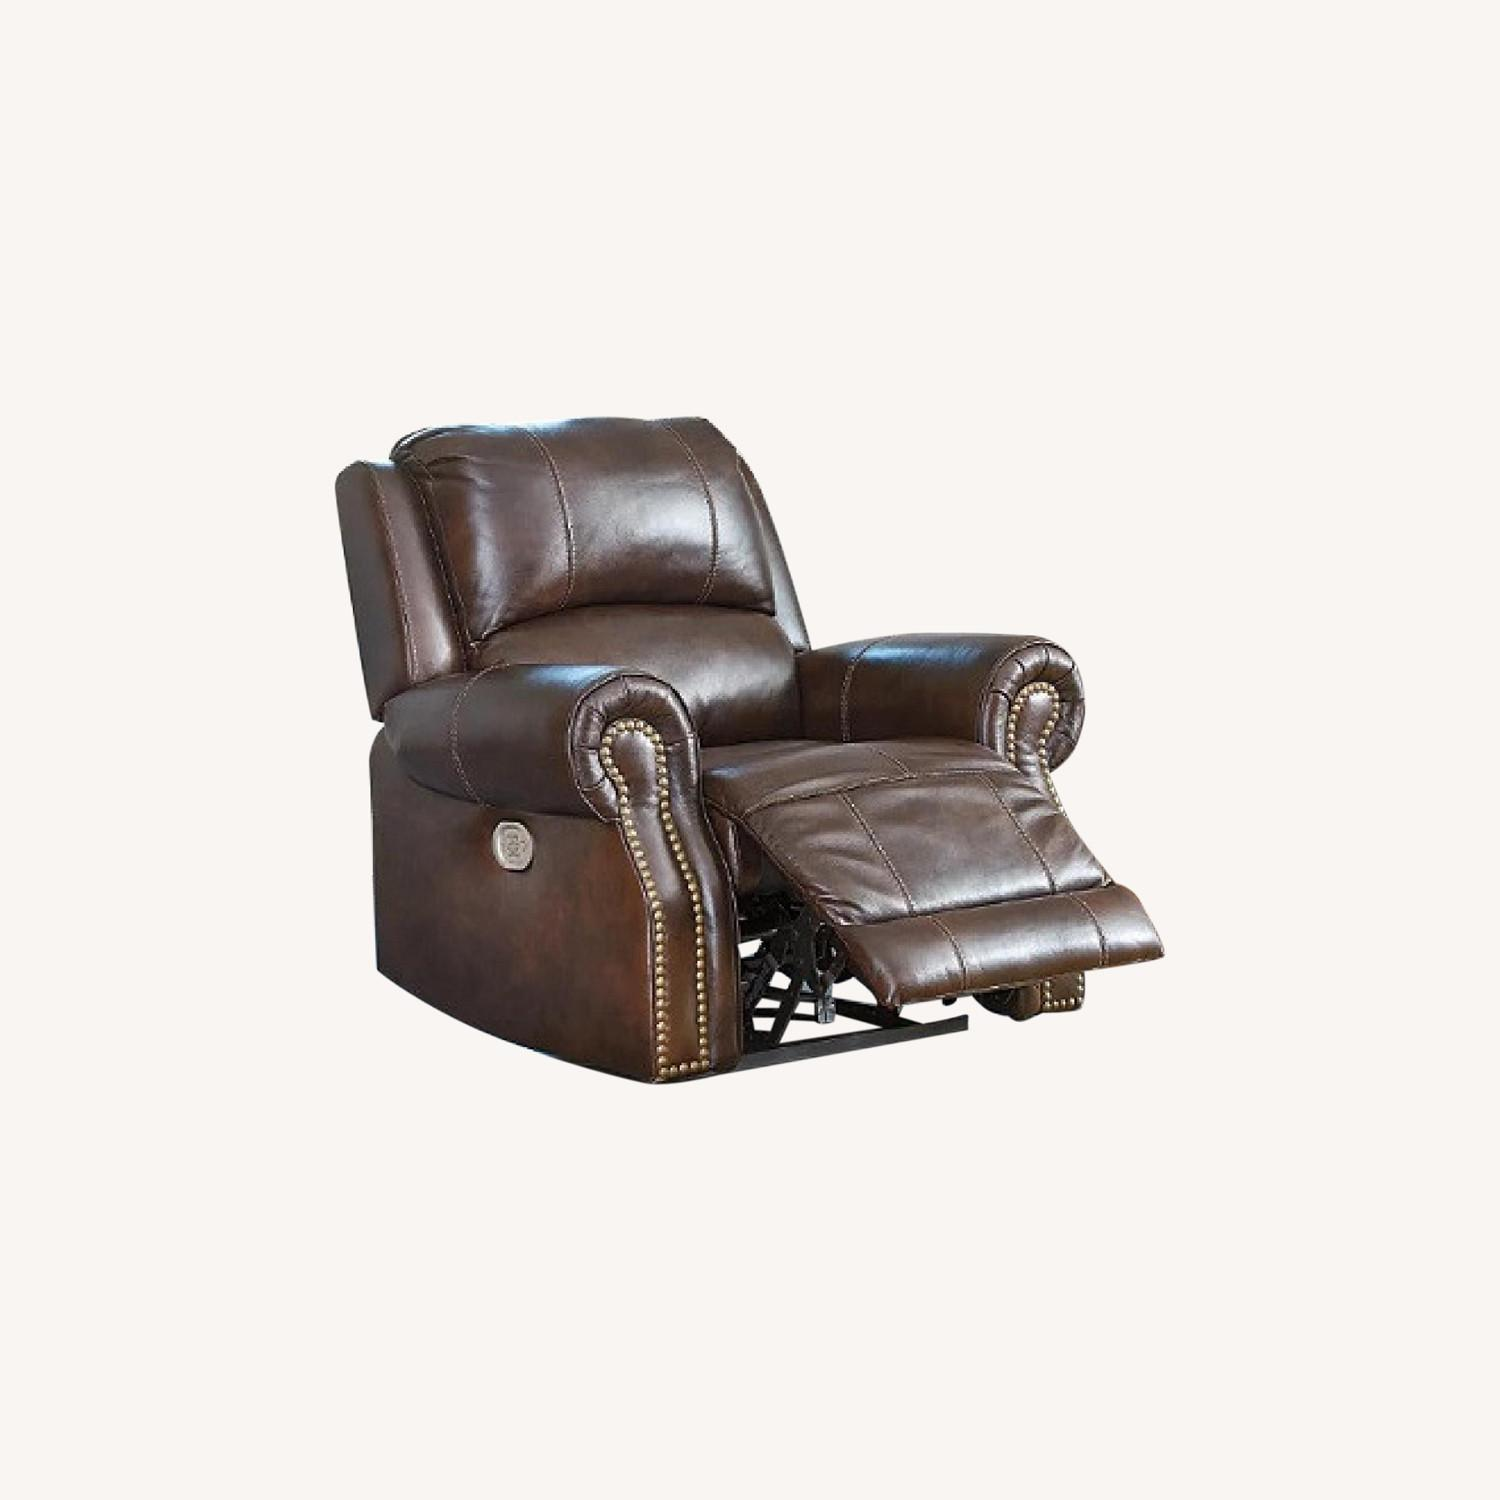 Ashley Furniture Power Reclining Chair - image-0